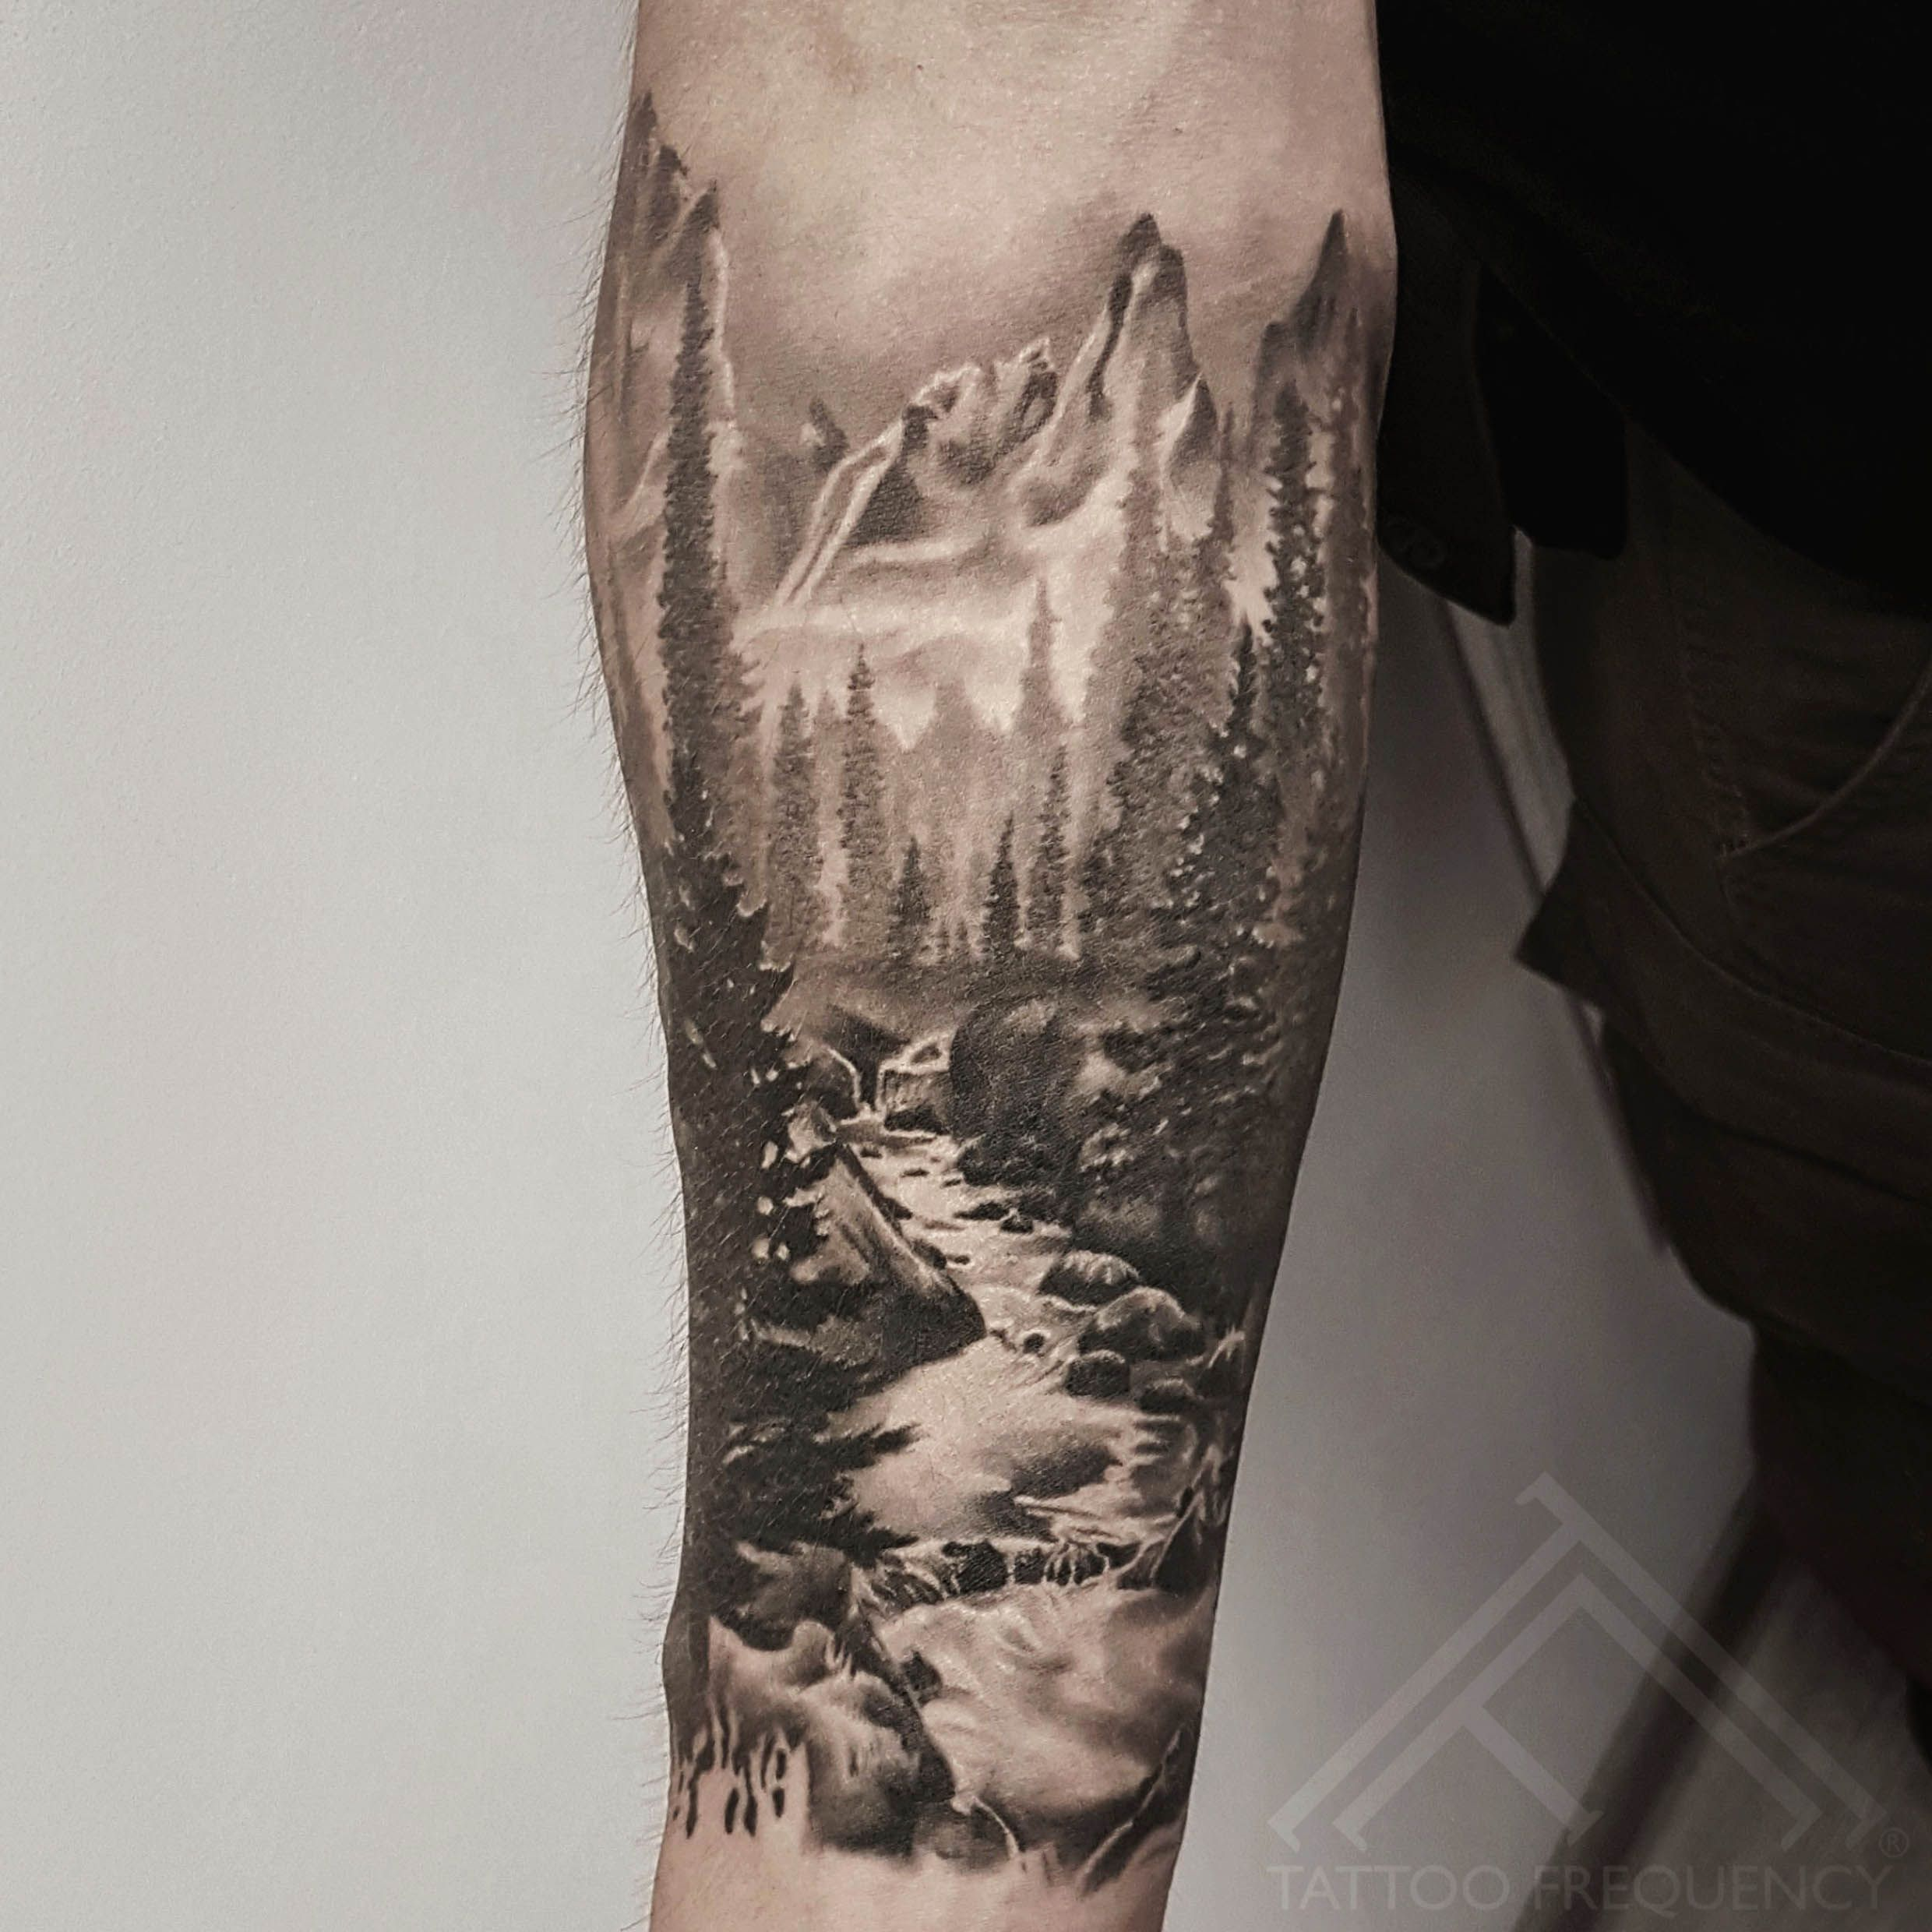 Tattoo Vorlagen Arm Komplett Completely Healed Black And Gray Landscape Tattoo On Mans Arm